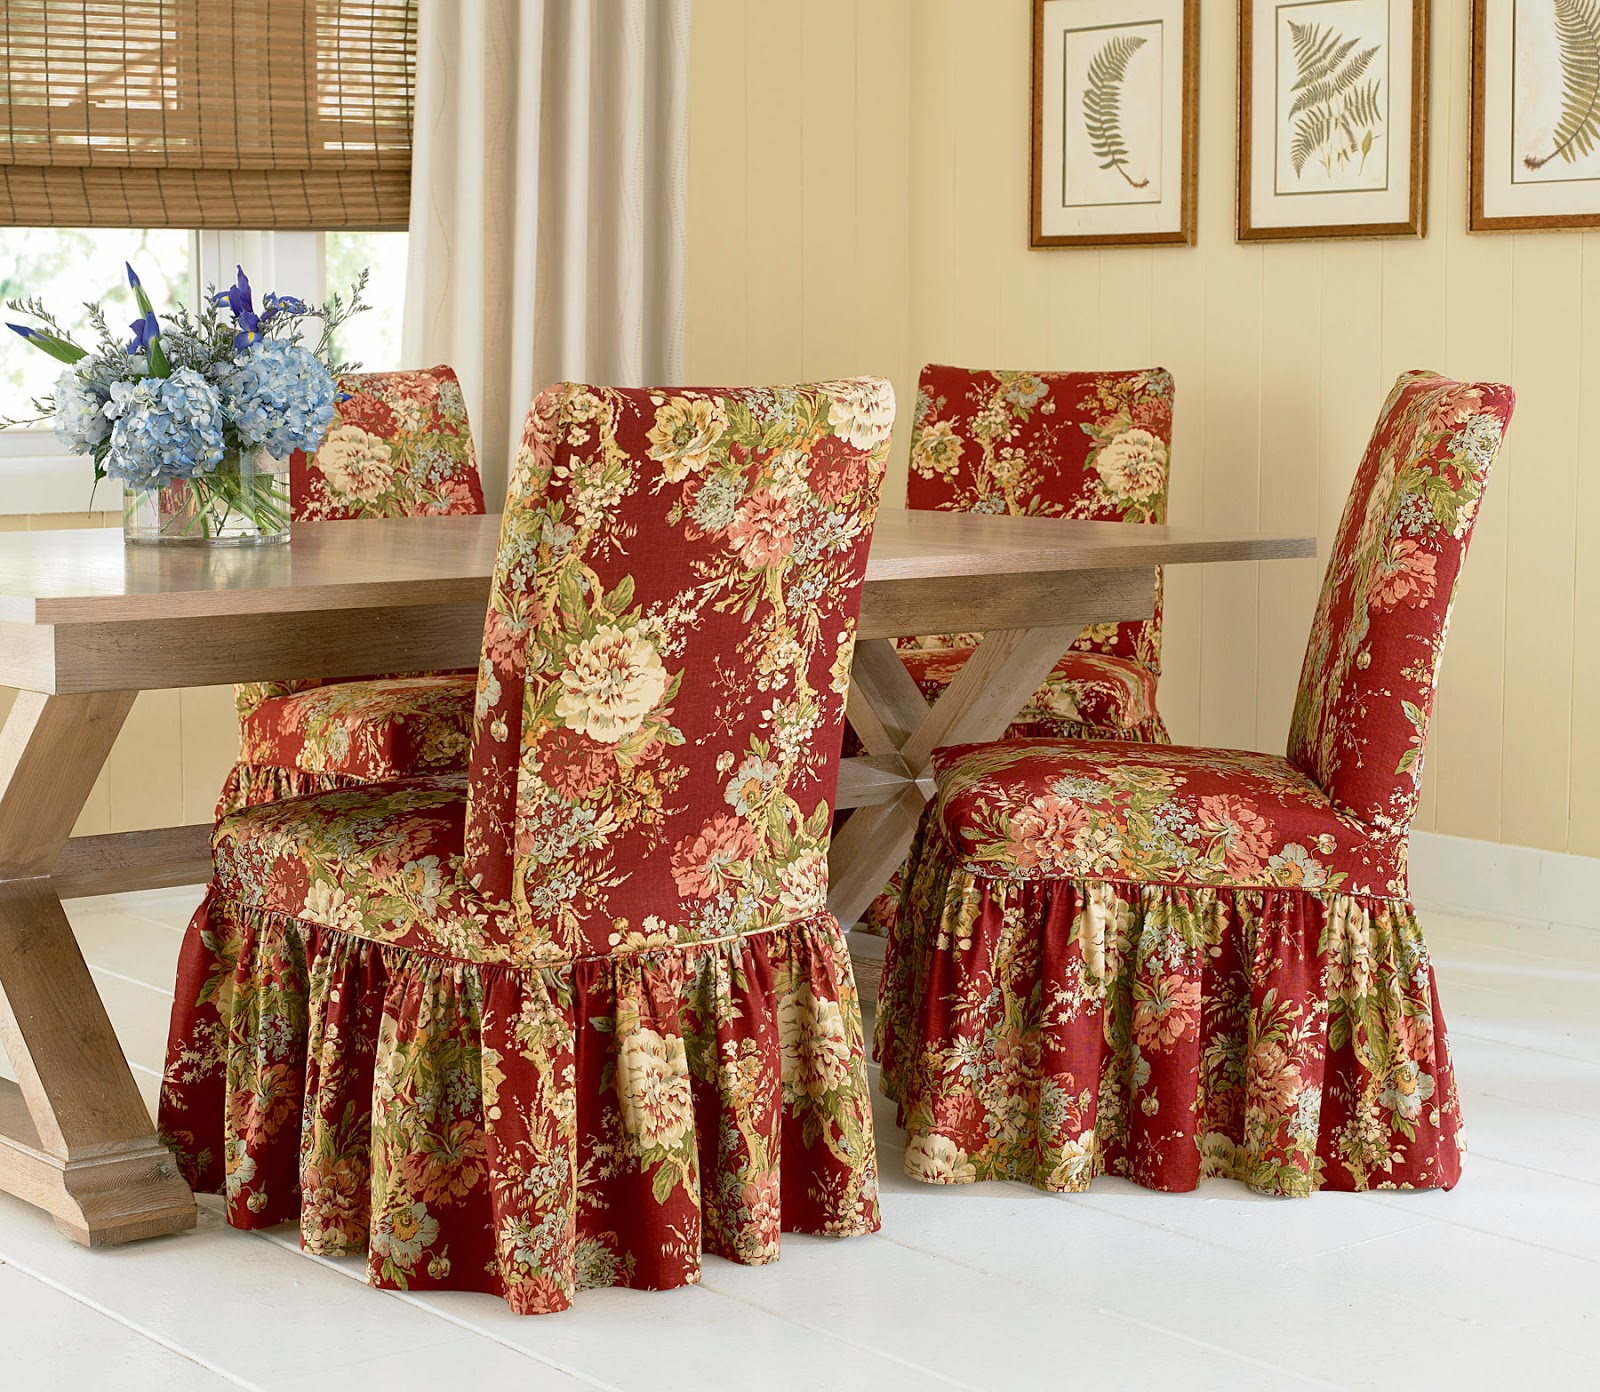 Sure Fit Slipcovers (Image 9 of 10)